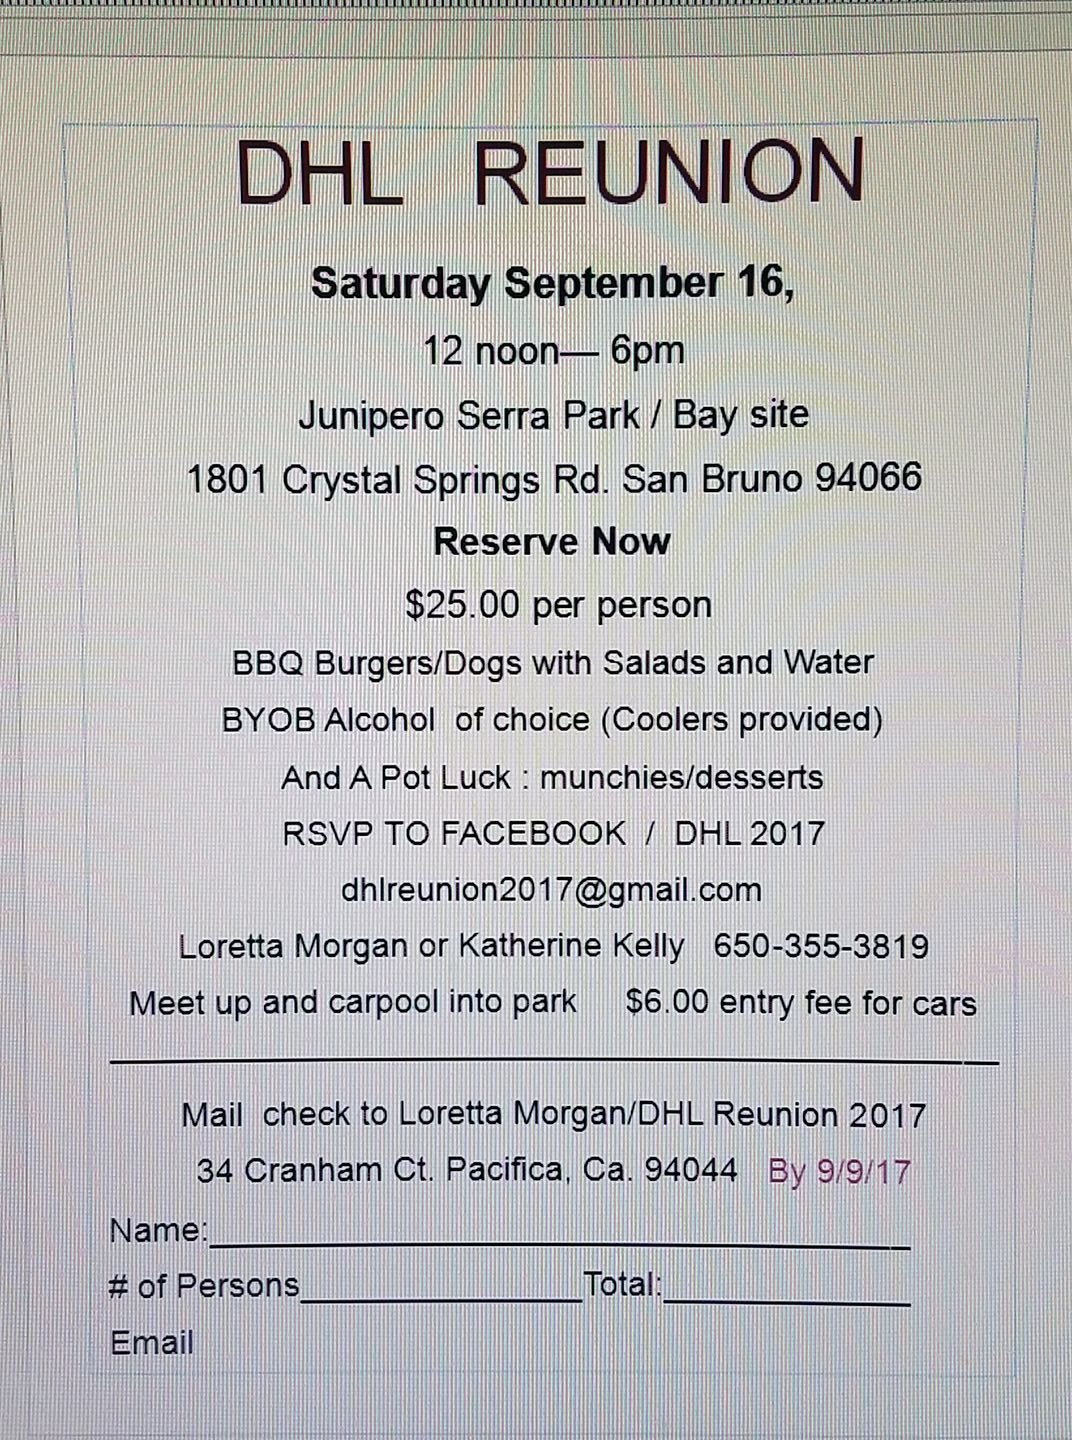 DHL Employee Reunion September 16th at Junipero Serra Park